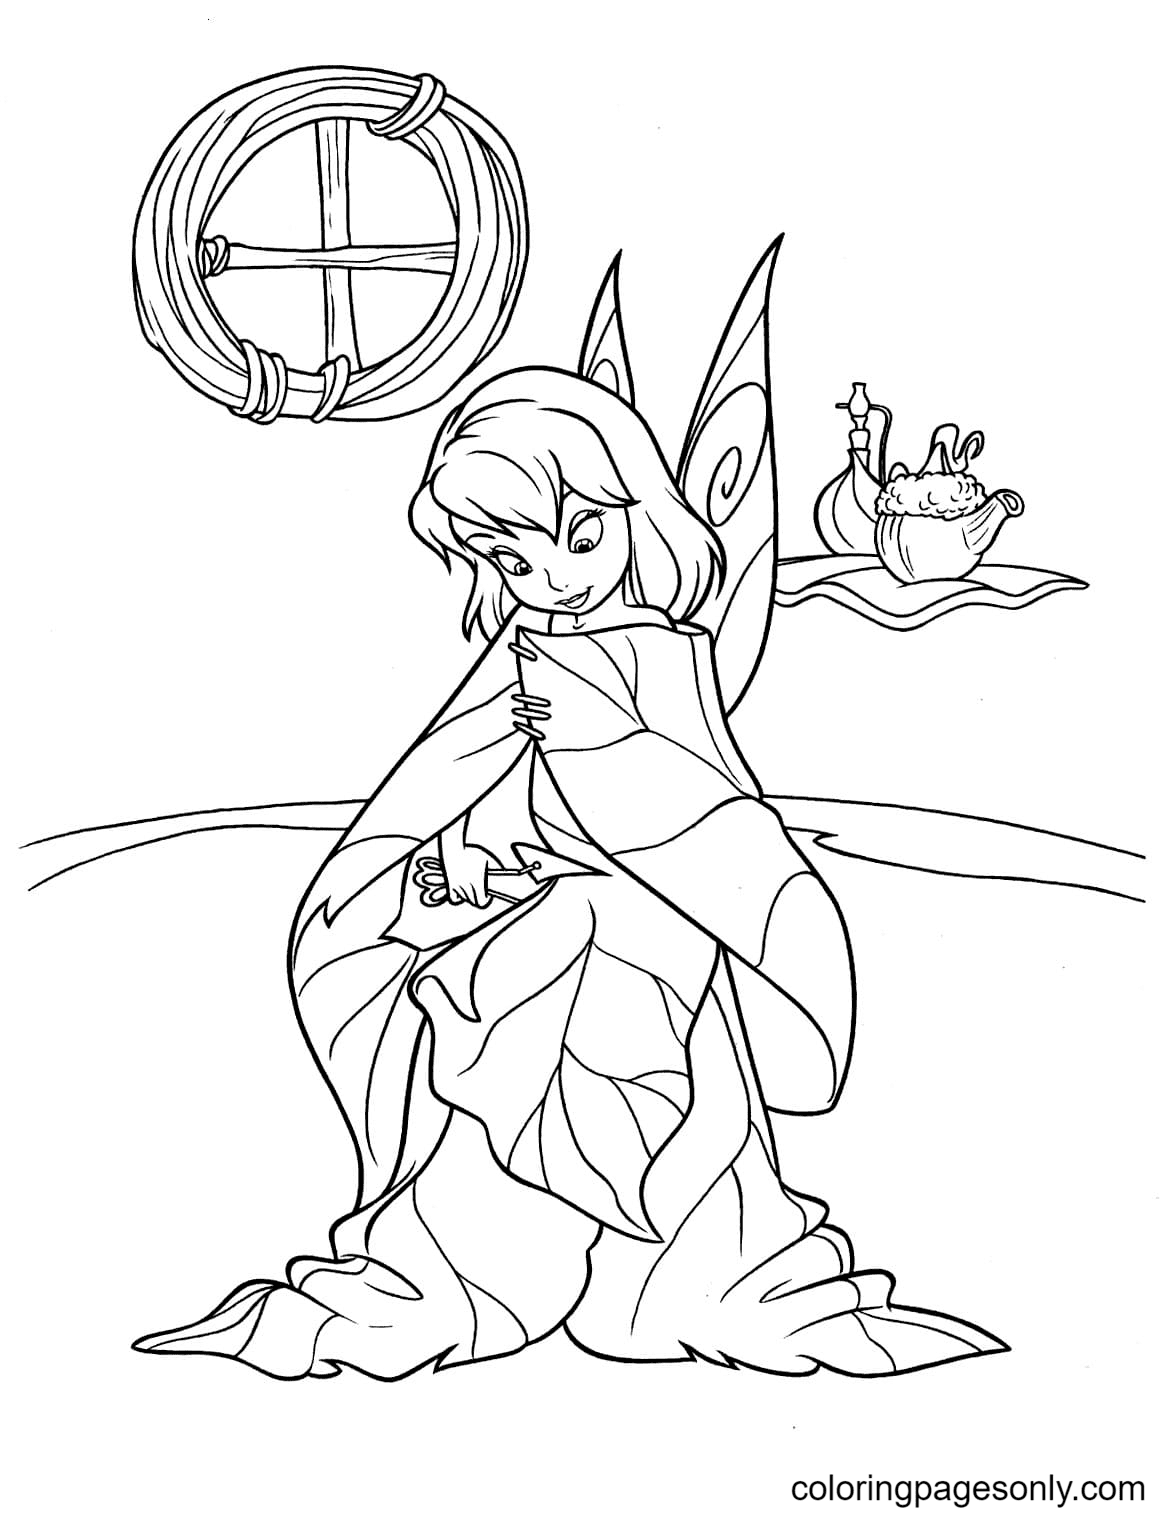 Tinker Bell Crafting Clothing from Leaves Coloring Page